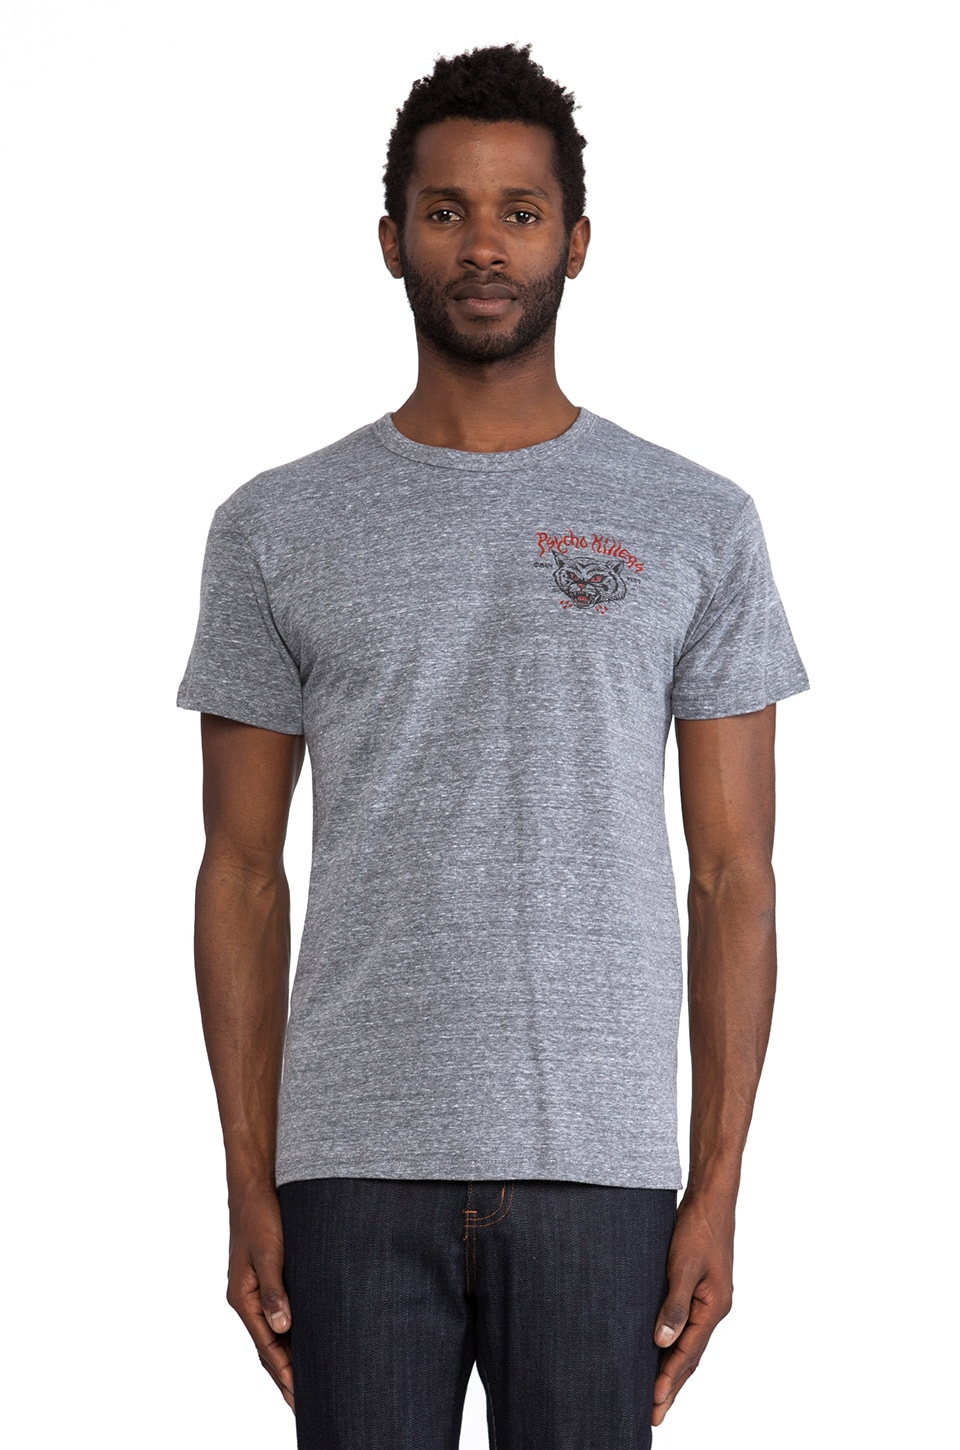 Obey Psycho Killers Tee in Heather Grey